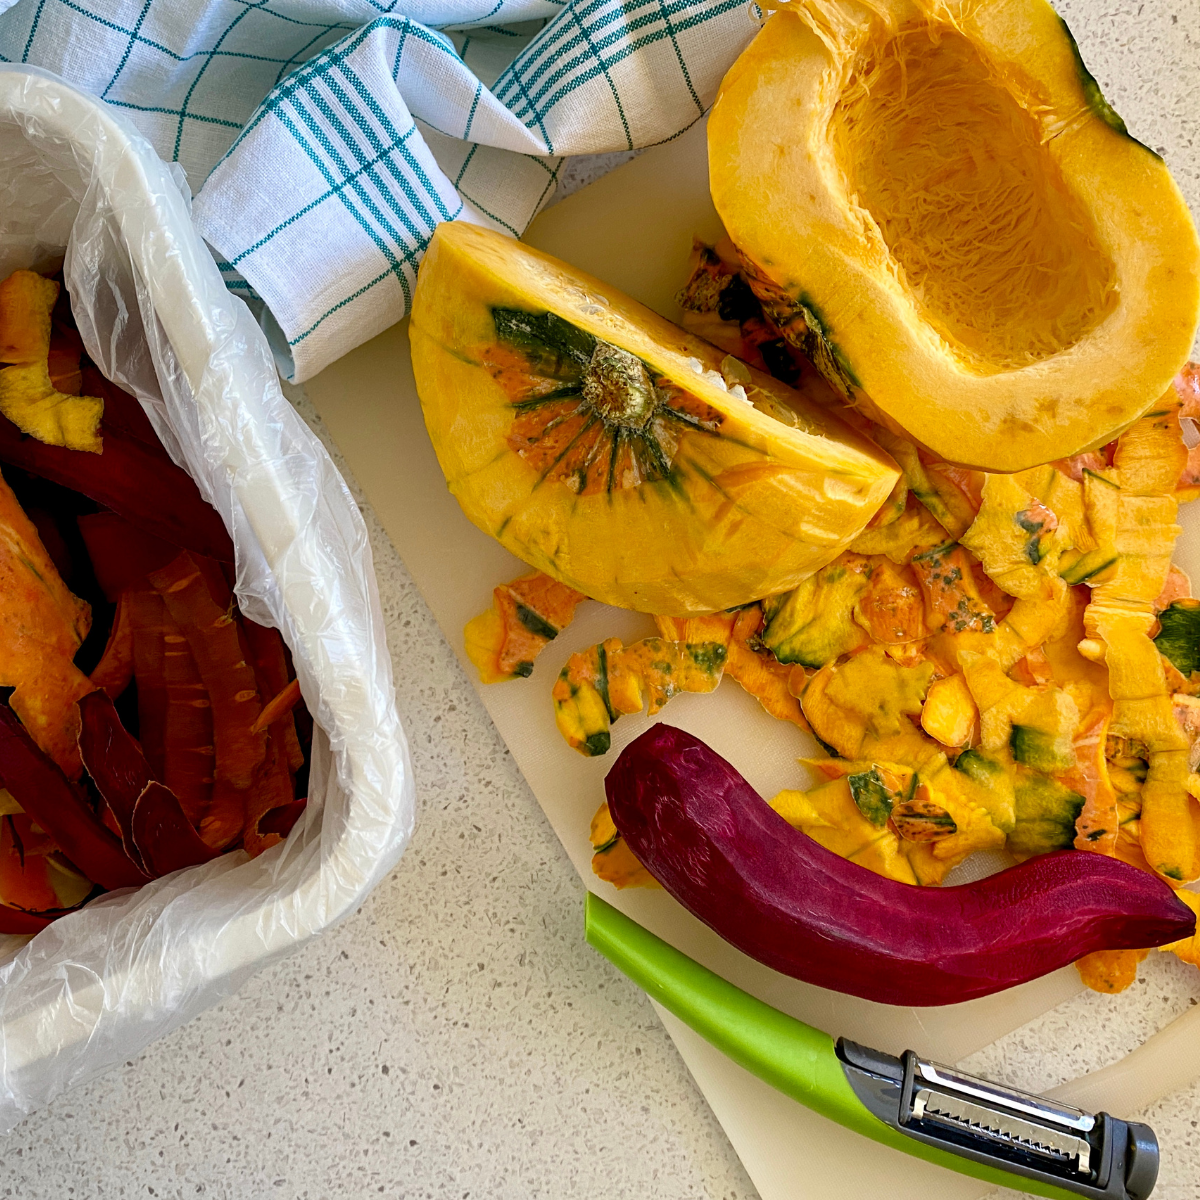 How to Dehydrate Food: Peel Vegetables and Fruits